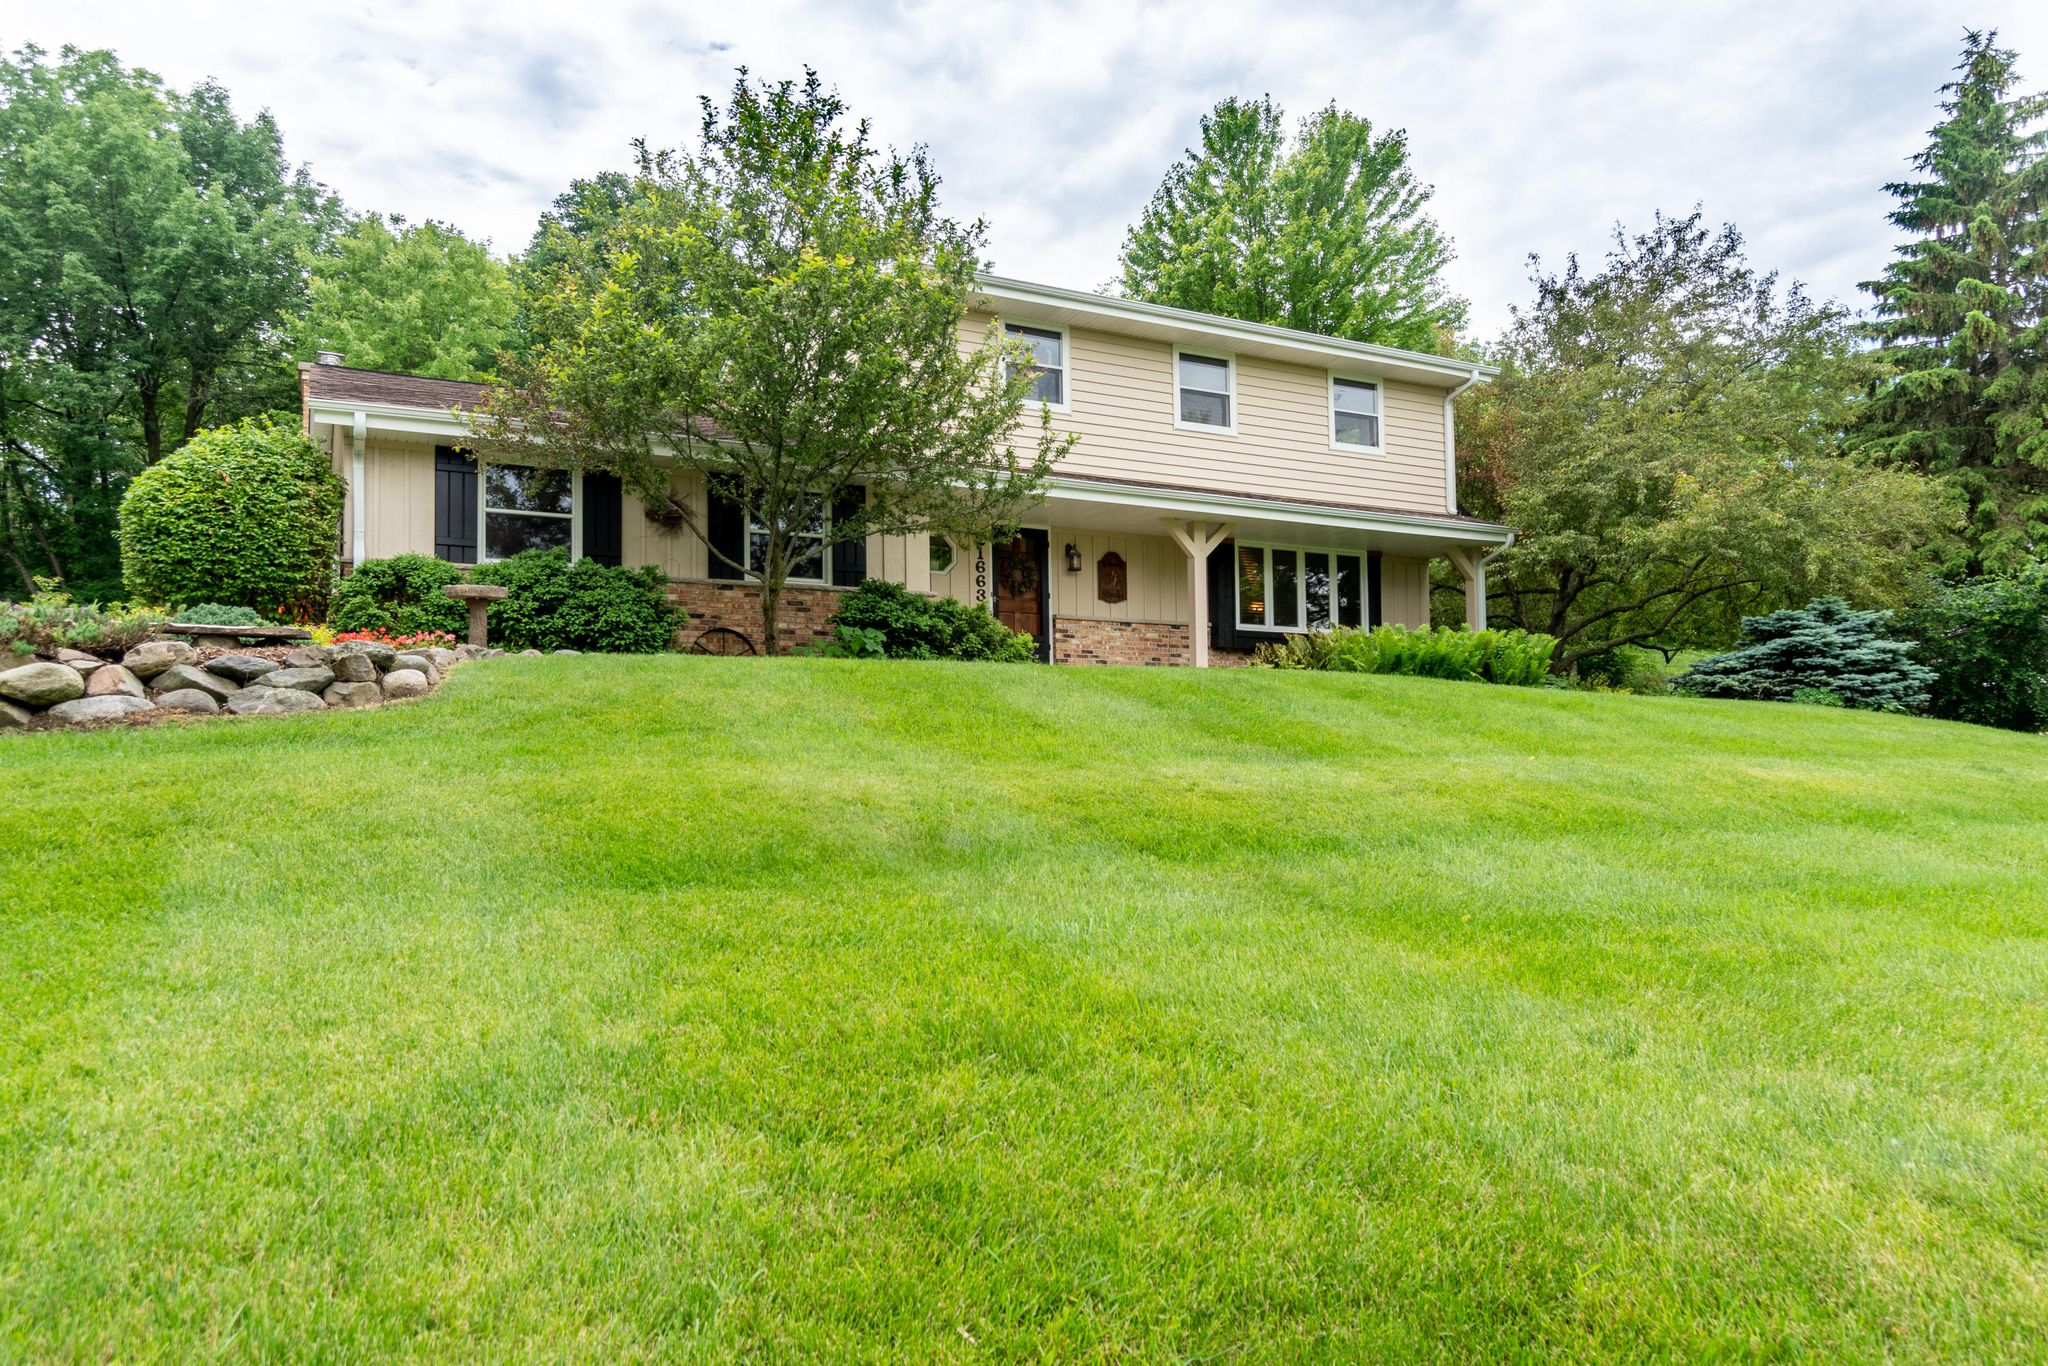 21663 W Bonnie Ln, Lannon, WI 53046 - 4 Bed, 3 Bath Single-Family Home -  MLS #1644912 - 25 Photos | Trulia